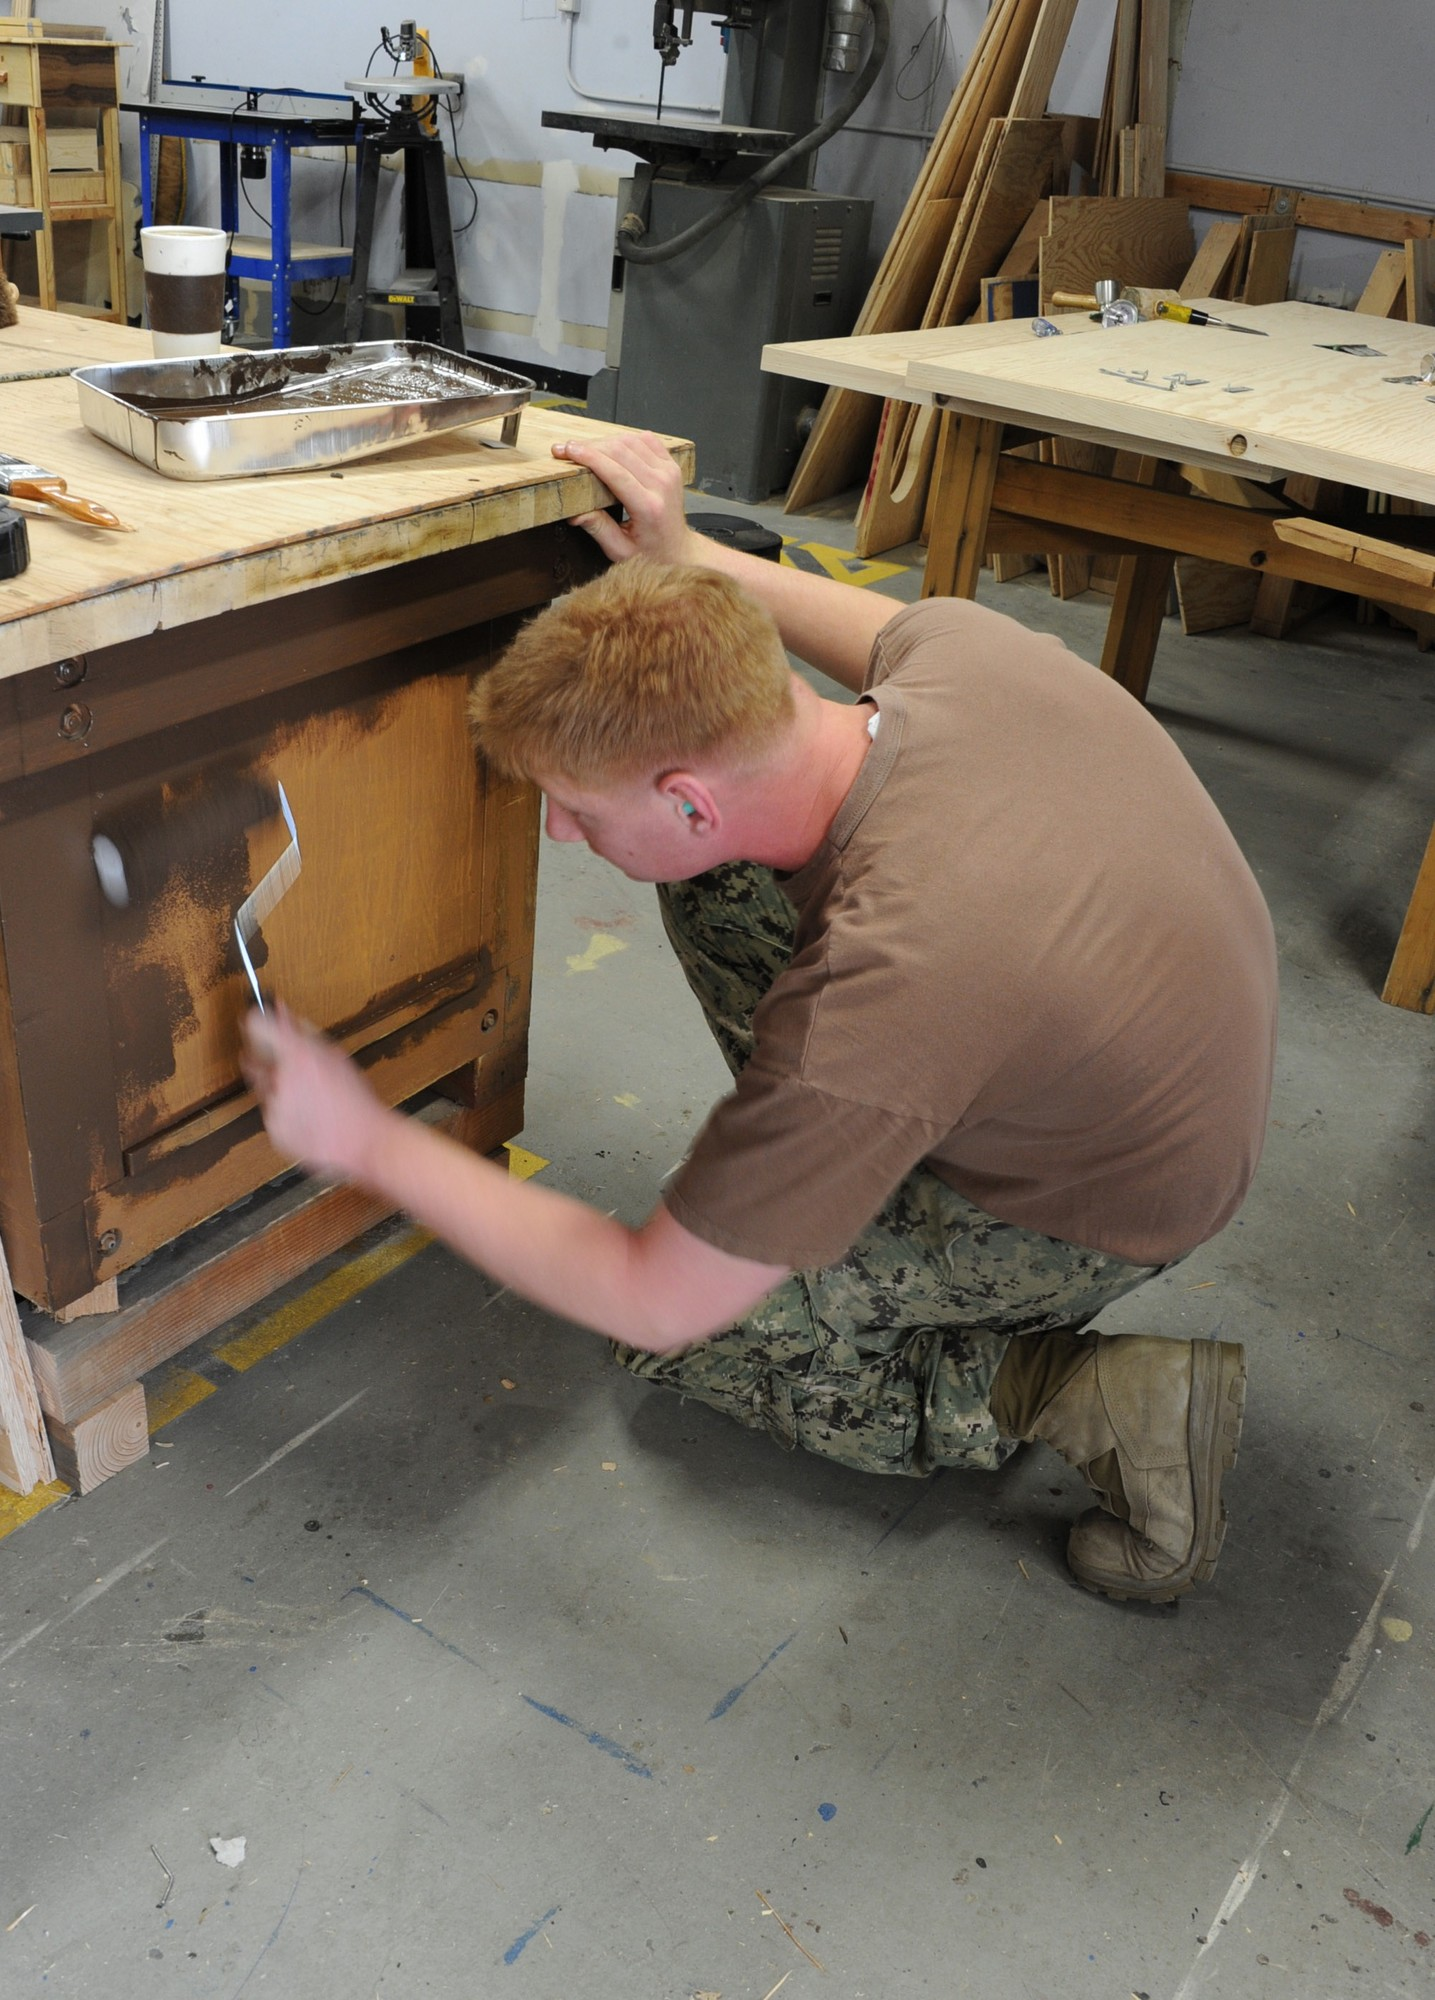 Builder 3rd Class John Skoblicki, of East Rockaway, painted a work bench inside the Naval Air Facility Atsugi Public Works workshop in Japan.